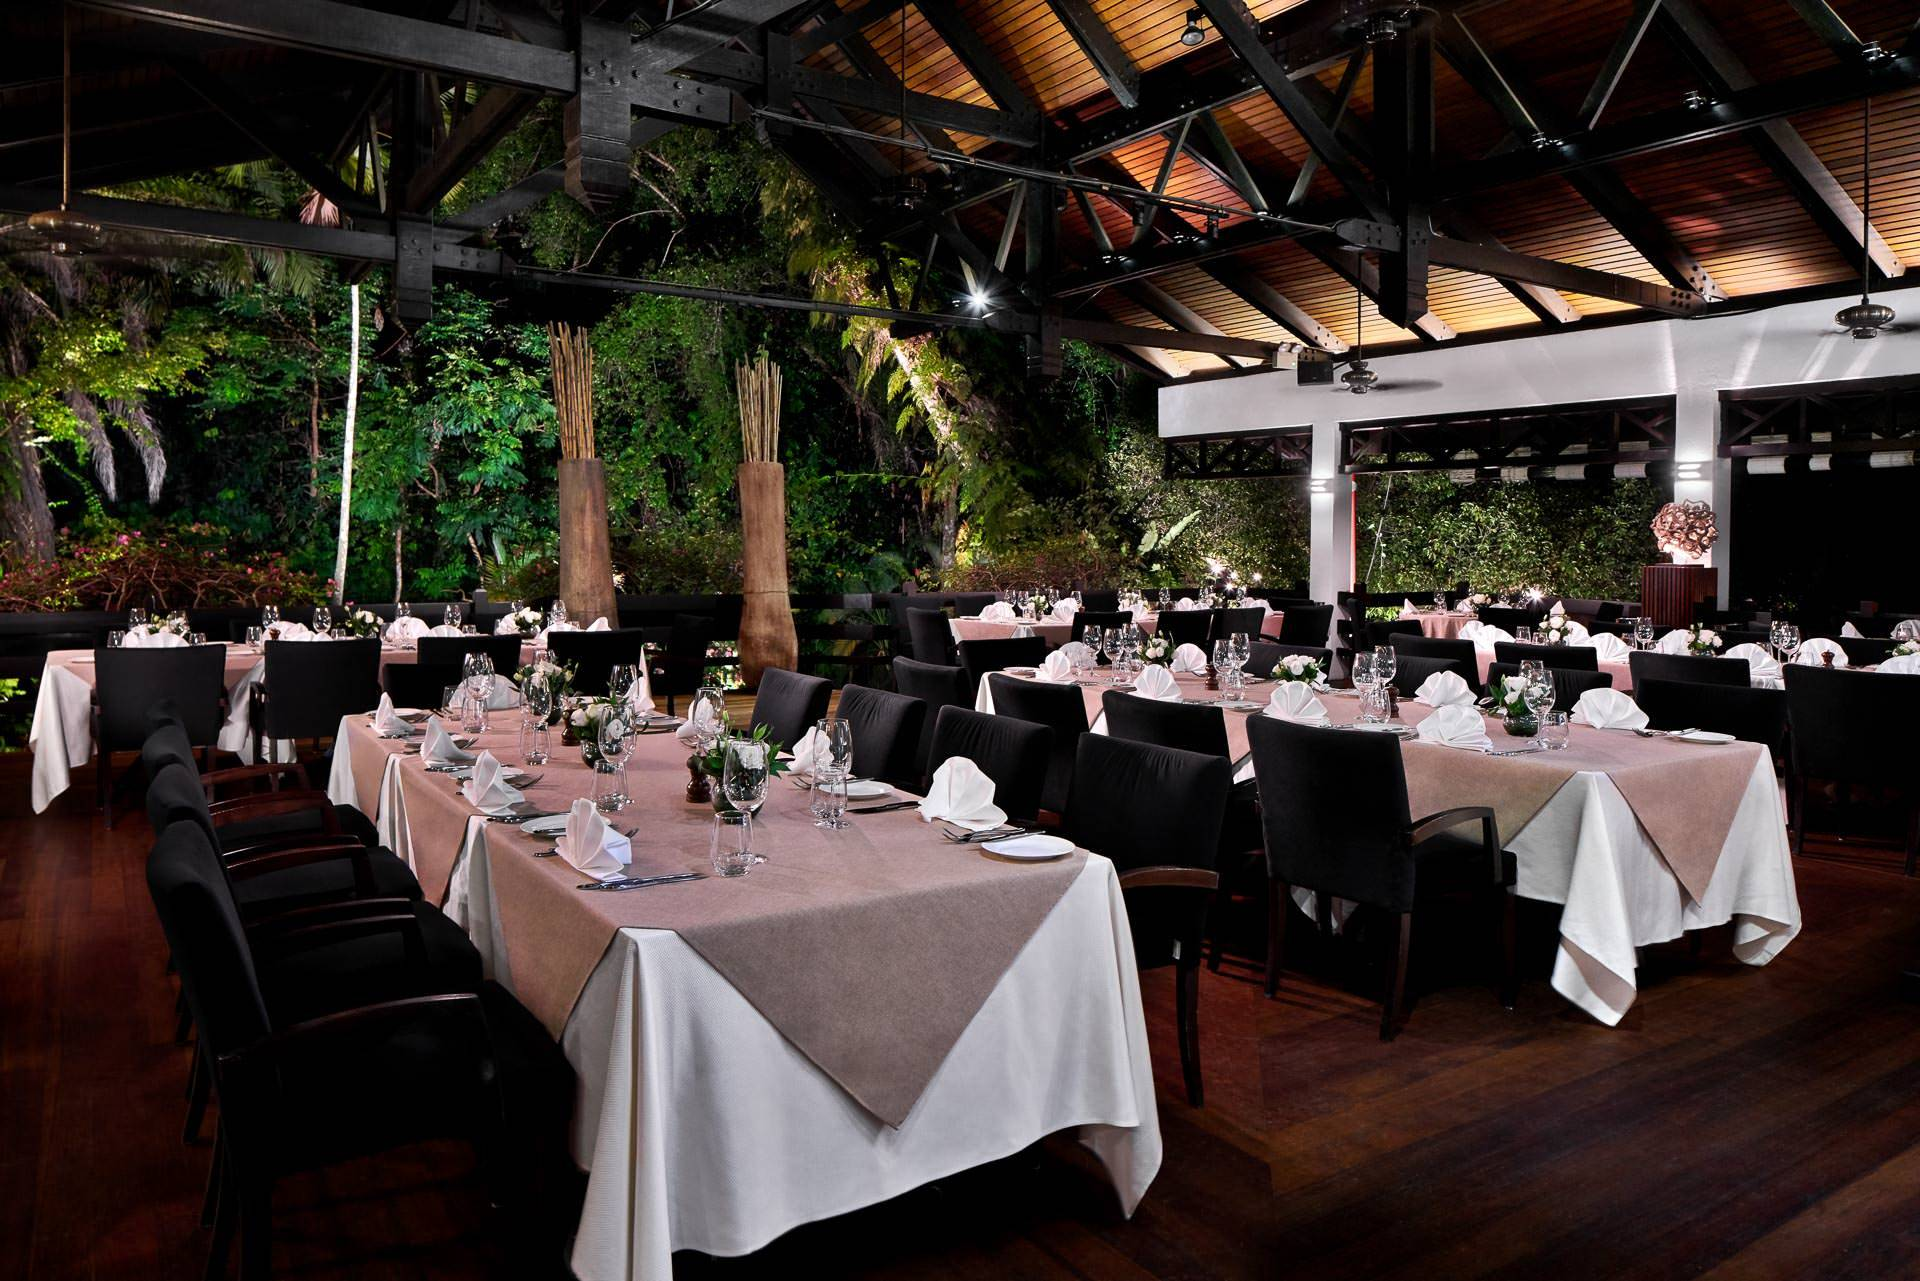 Architectural photography or arbenz restaurant at night at Swiss Club in Singapore